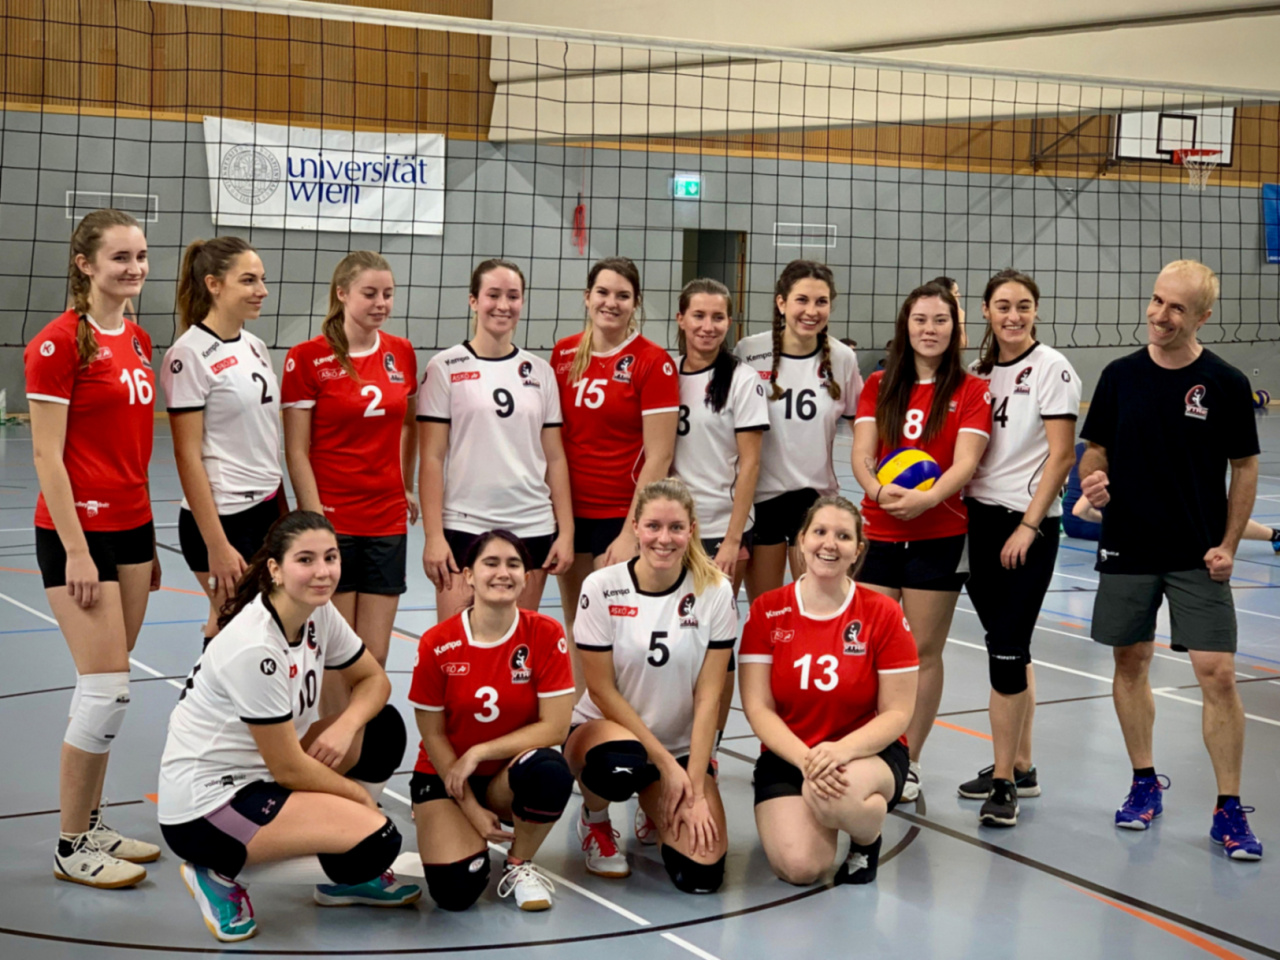 unnamed.jpg-VOLLEYTEAM ROADRUNNERS | Volleyball in meiner Stadt!